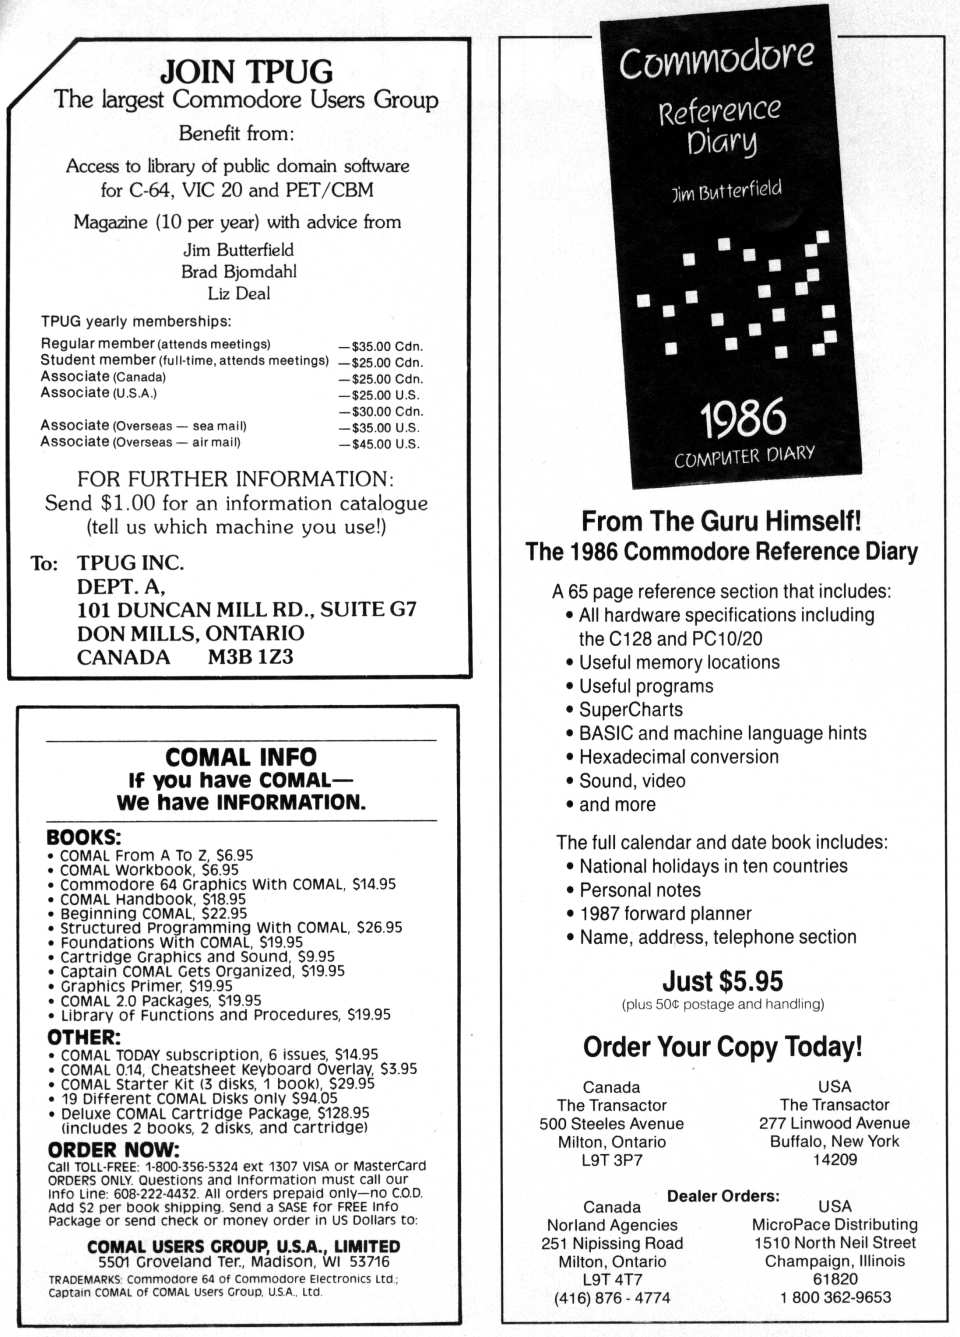 [Advertisement: Join TPUG, COMAL Users Group USA, The 1986 Commodore Reference Diary]